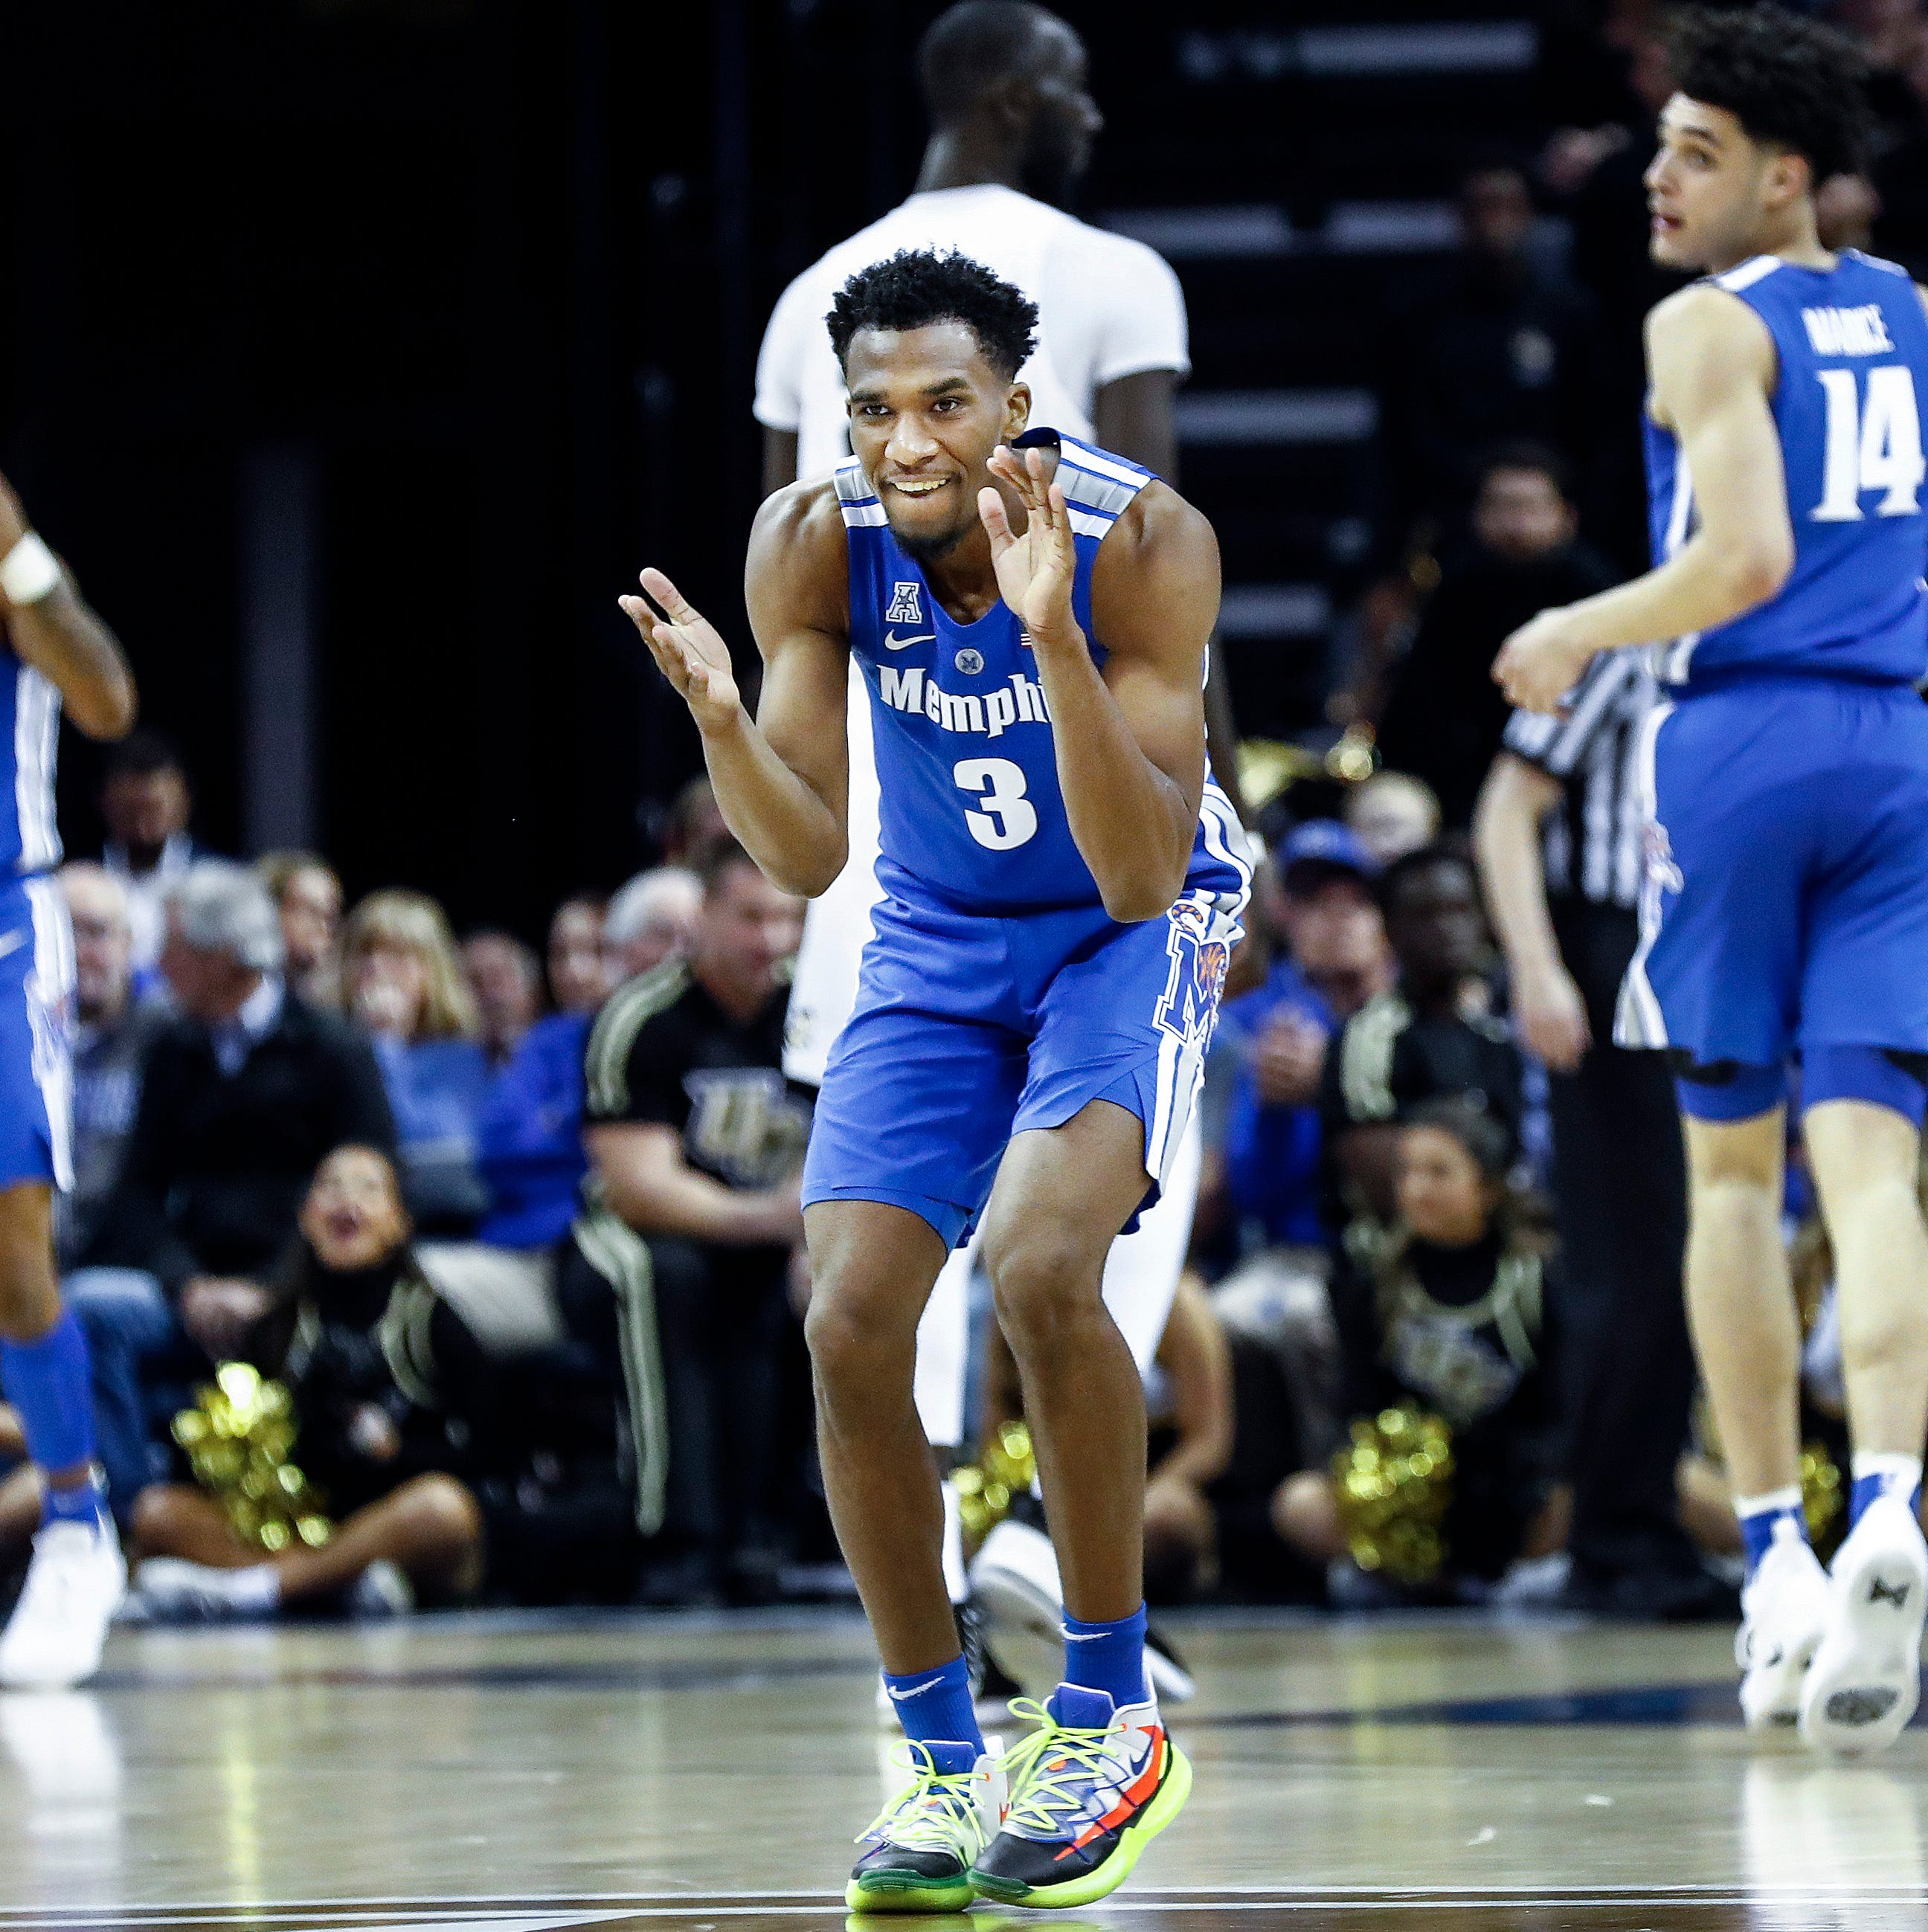 After Memphis blows past UCF in AAC Tournament, could the Tigers just be getting started?